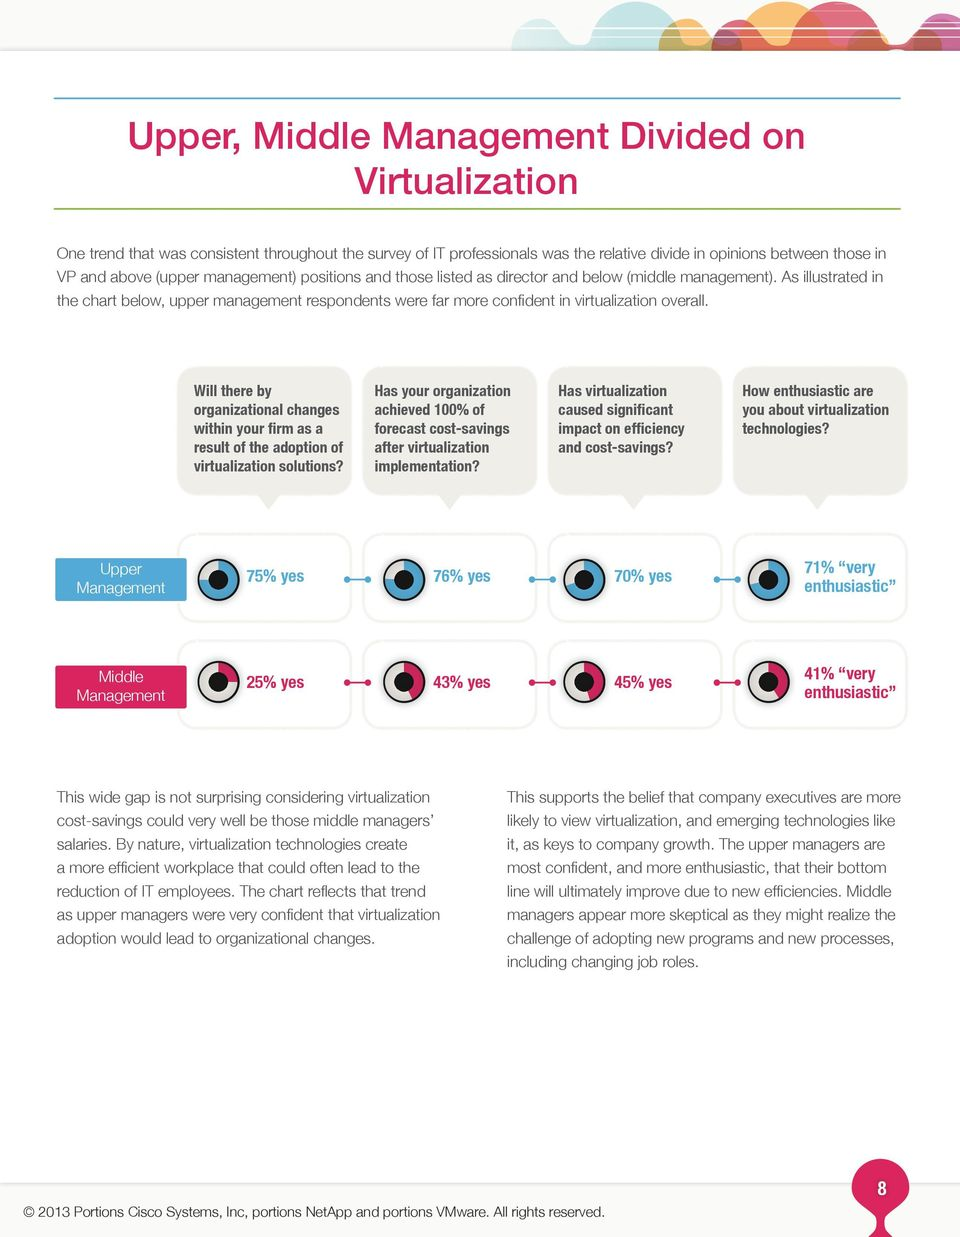 Will there by organizational changes within your firm as a result of the adoption of virtualization solutions?